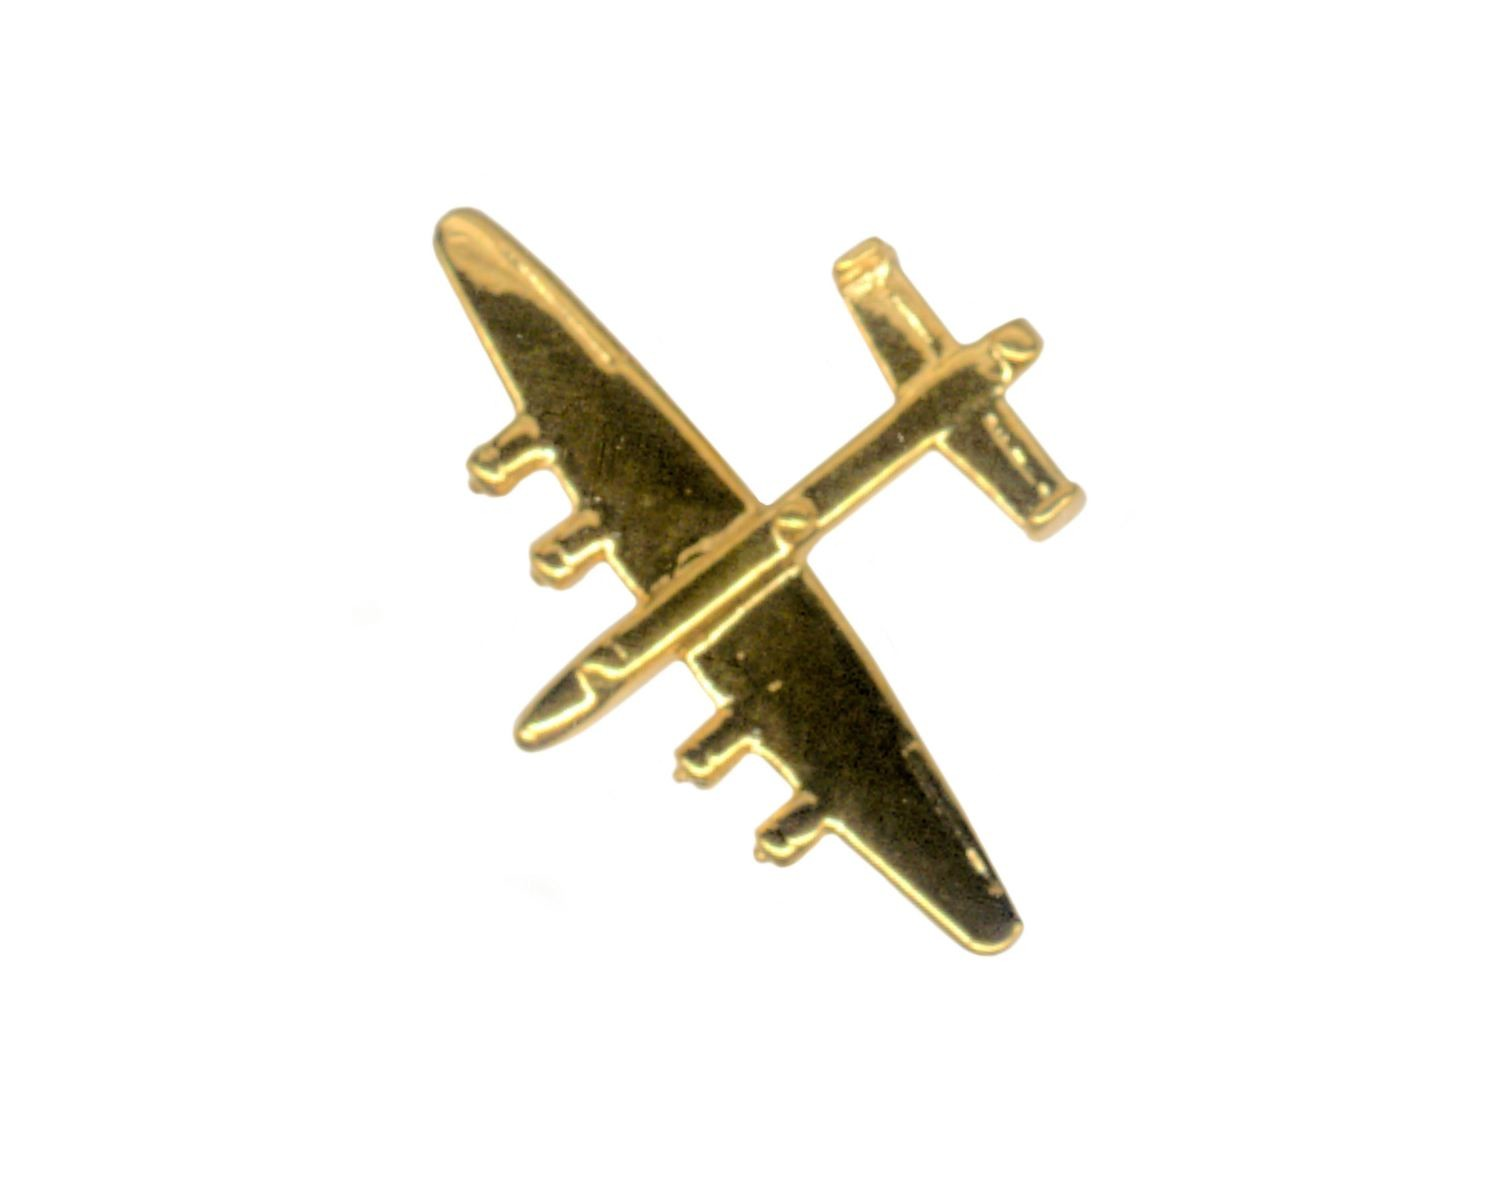 Halifax Gold Plated Tie / Lapel Pin